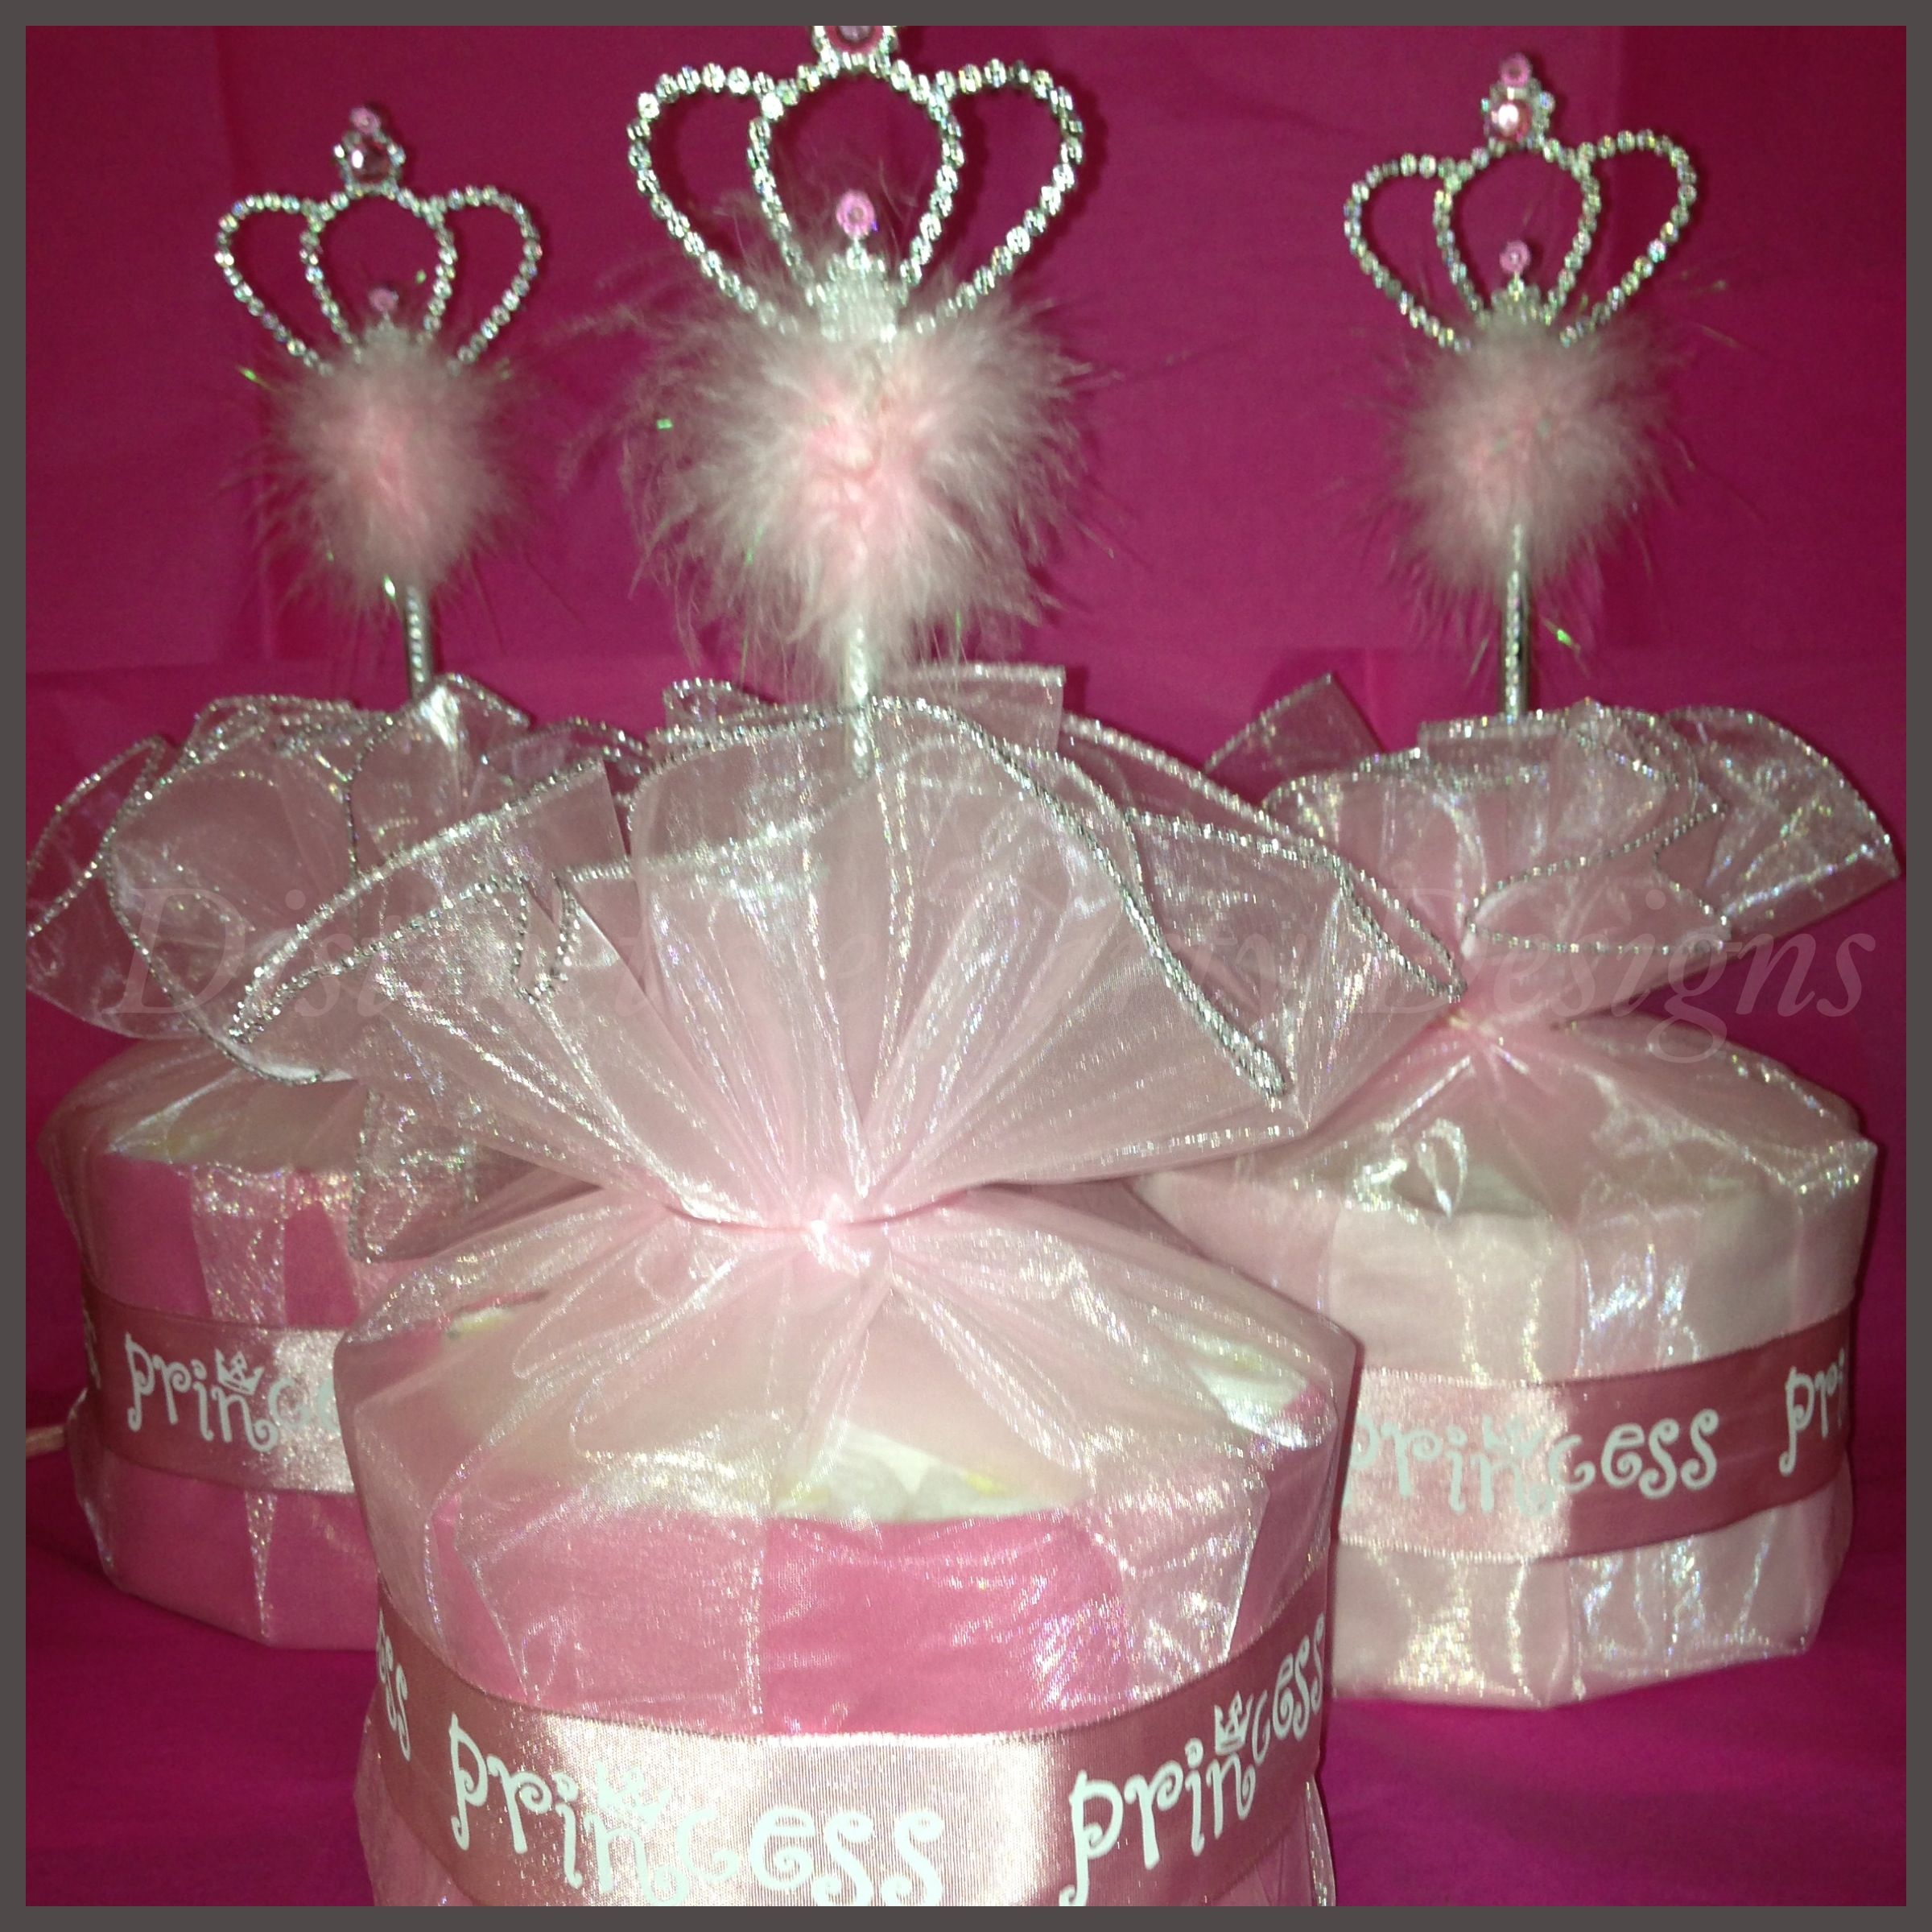 Mini Diaper Cake Table Centerpieces Created For A Princess Theme